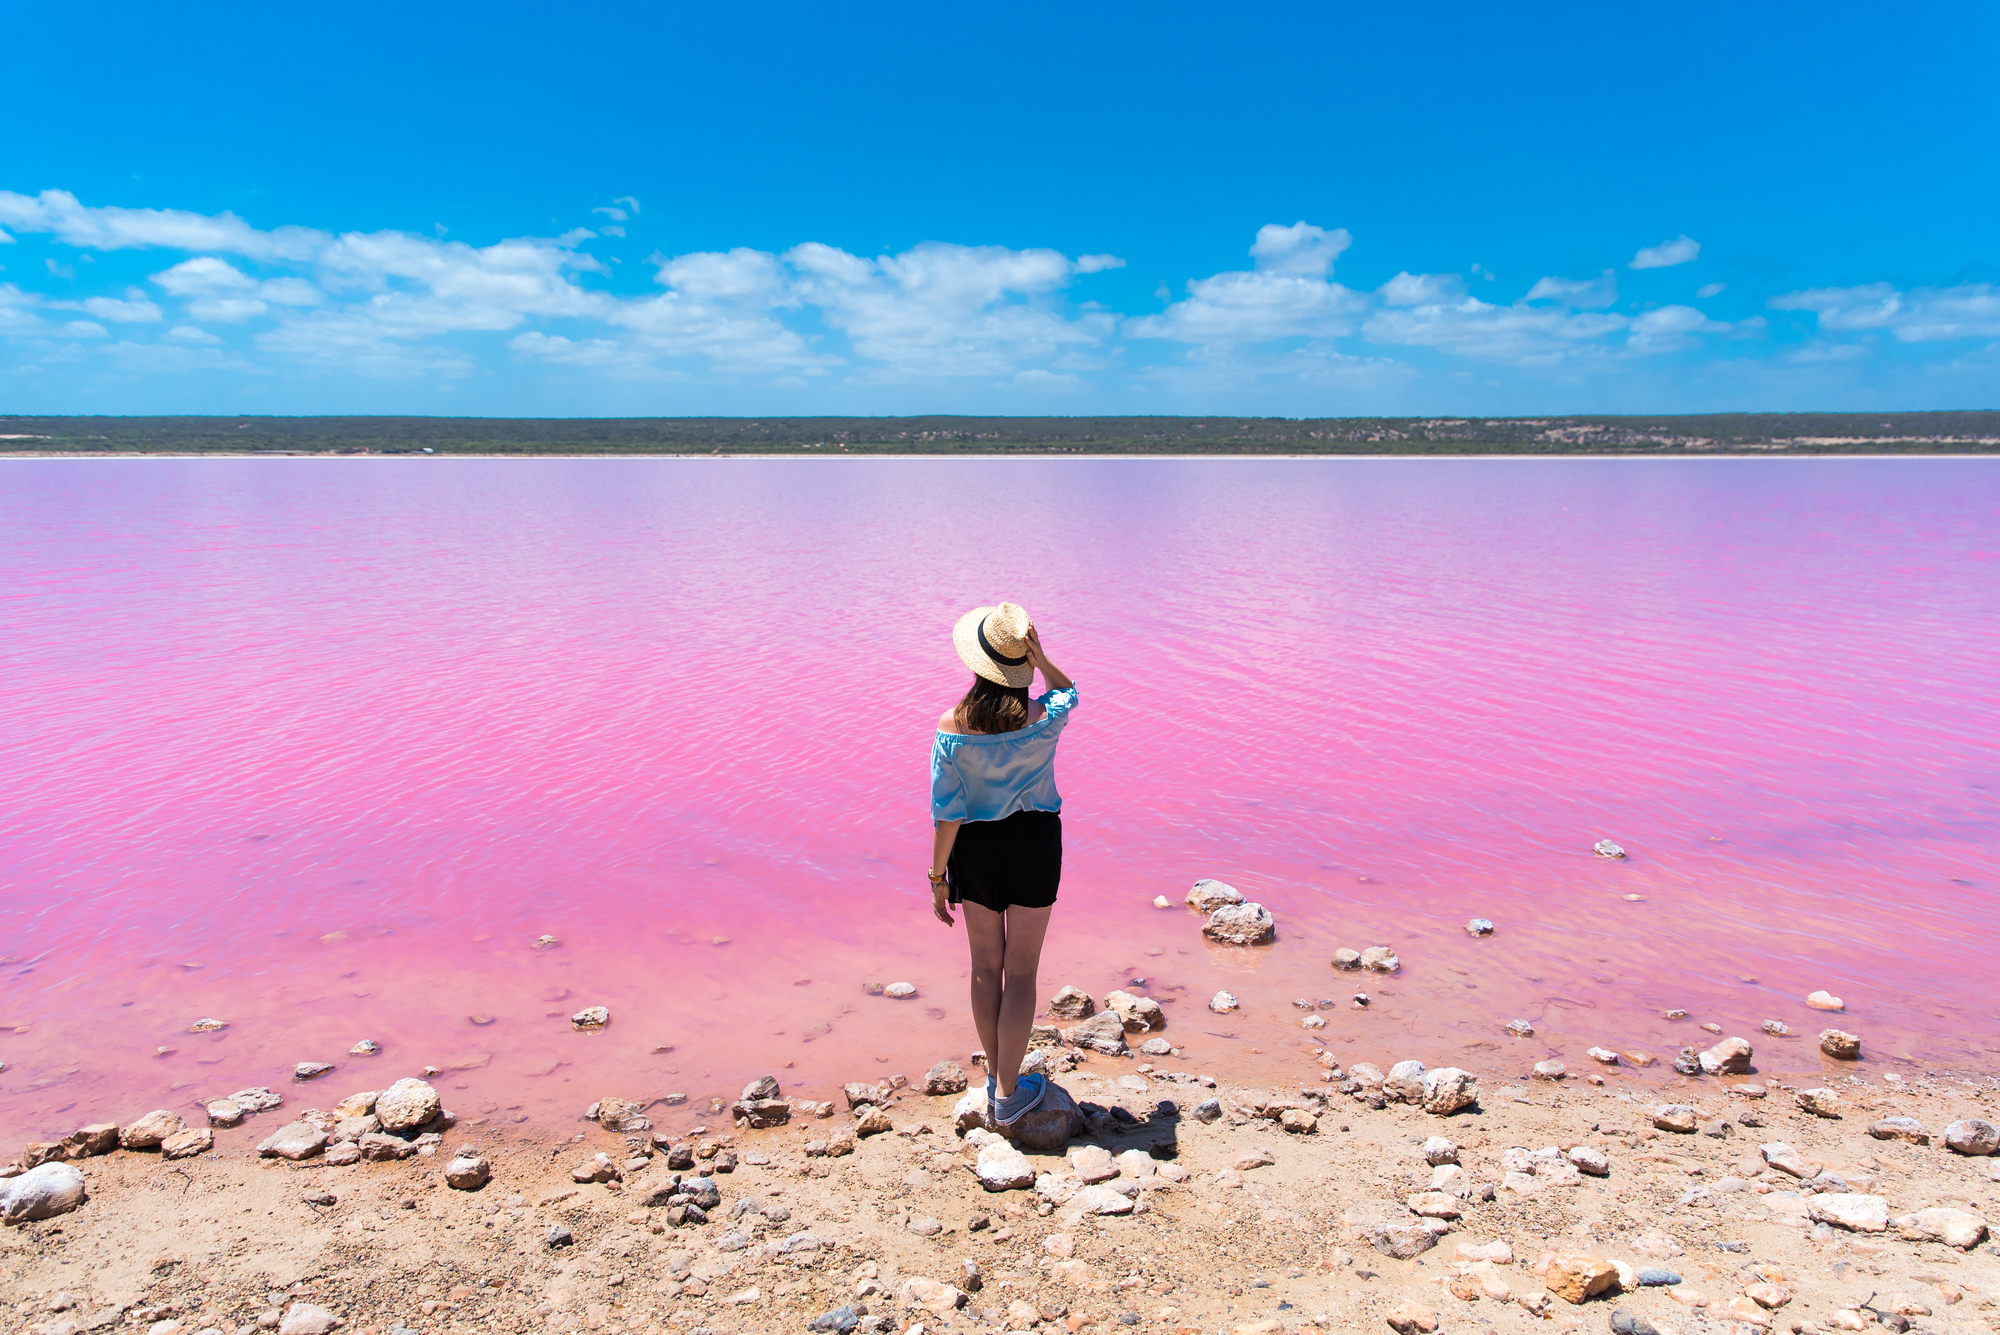 It blends the casual beach vibes with a. Best 10 Pink Places In The World Tours4fun